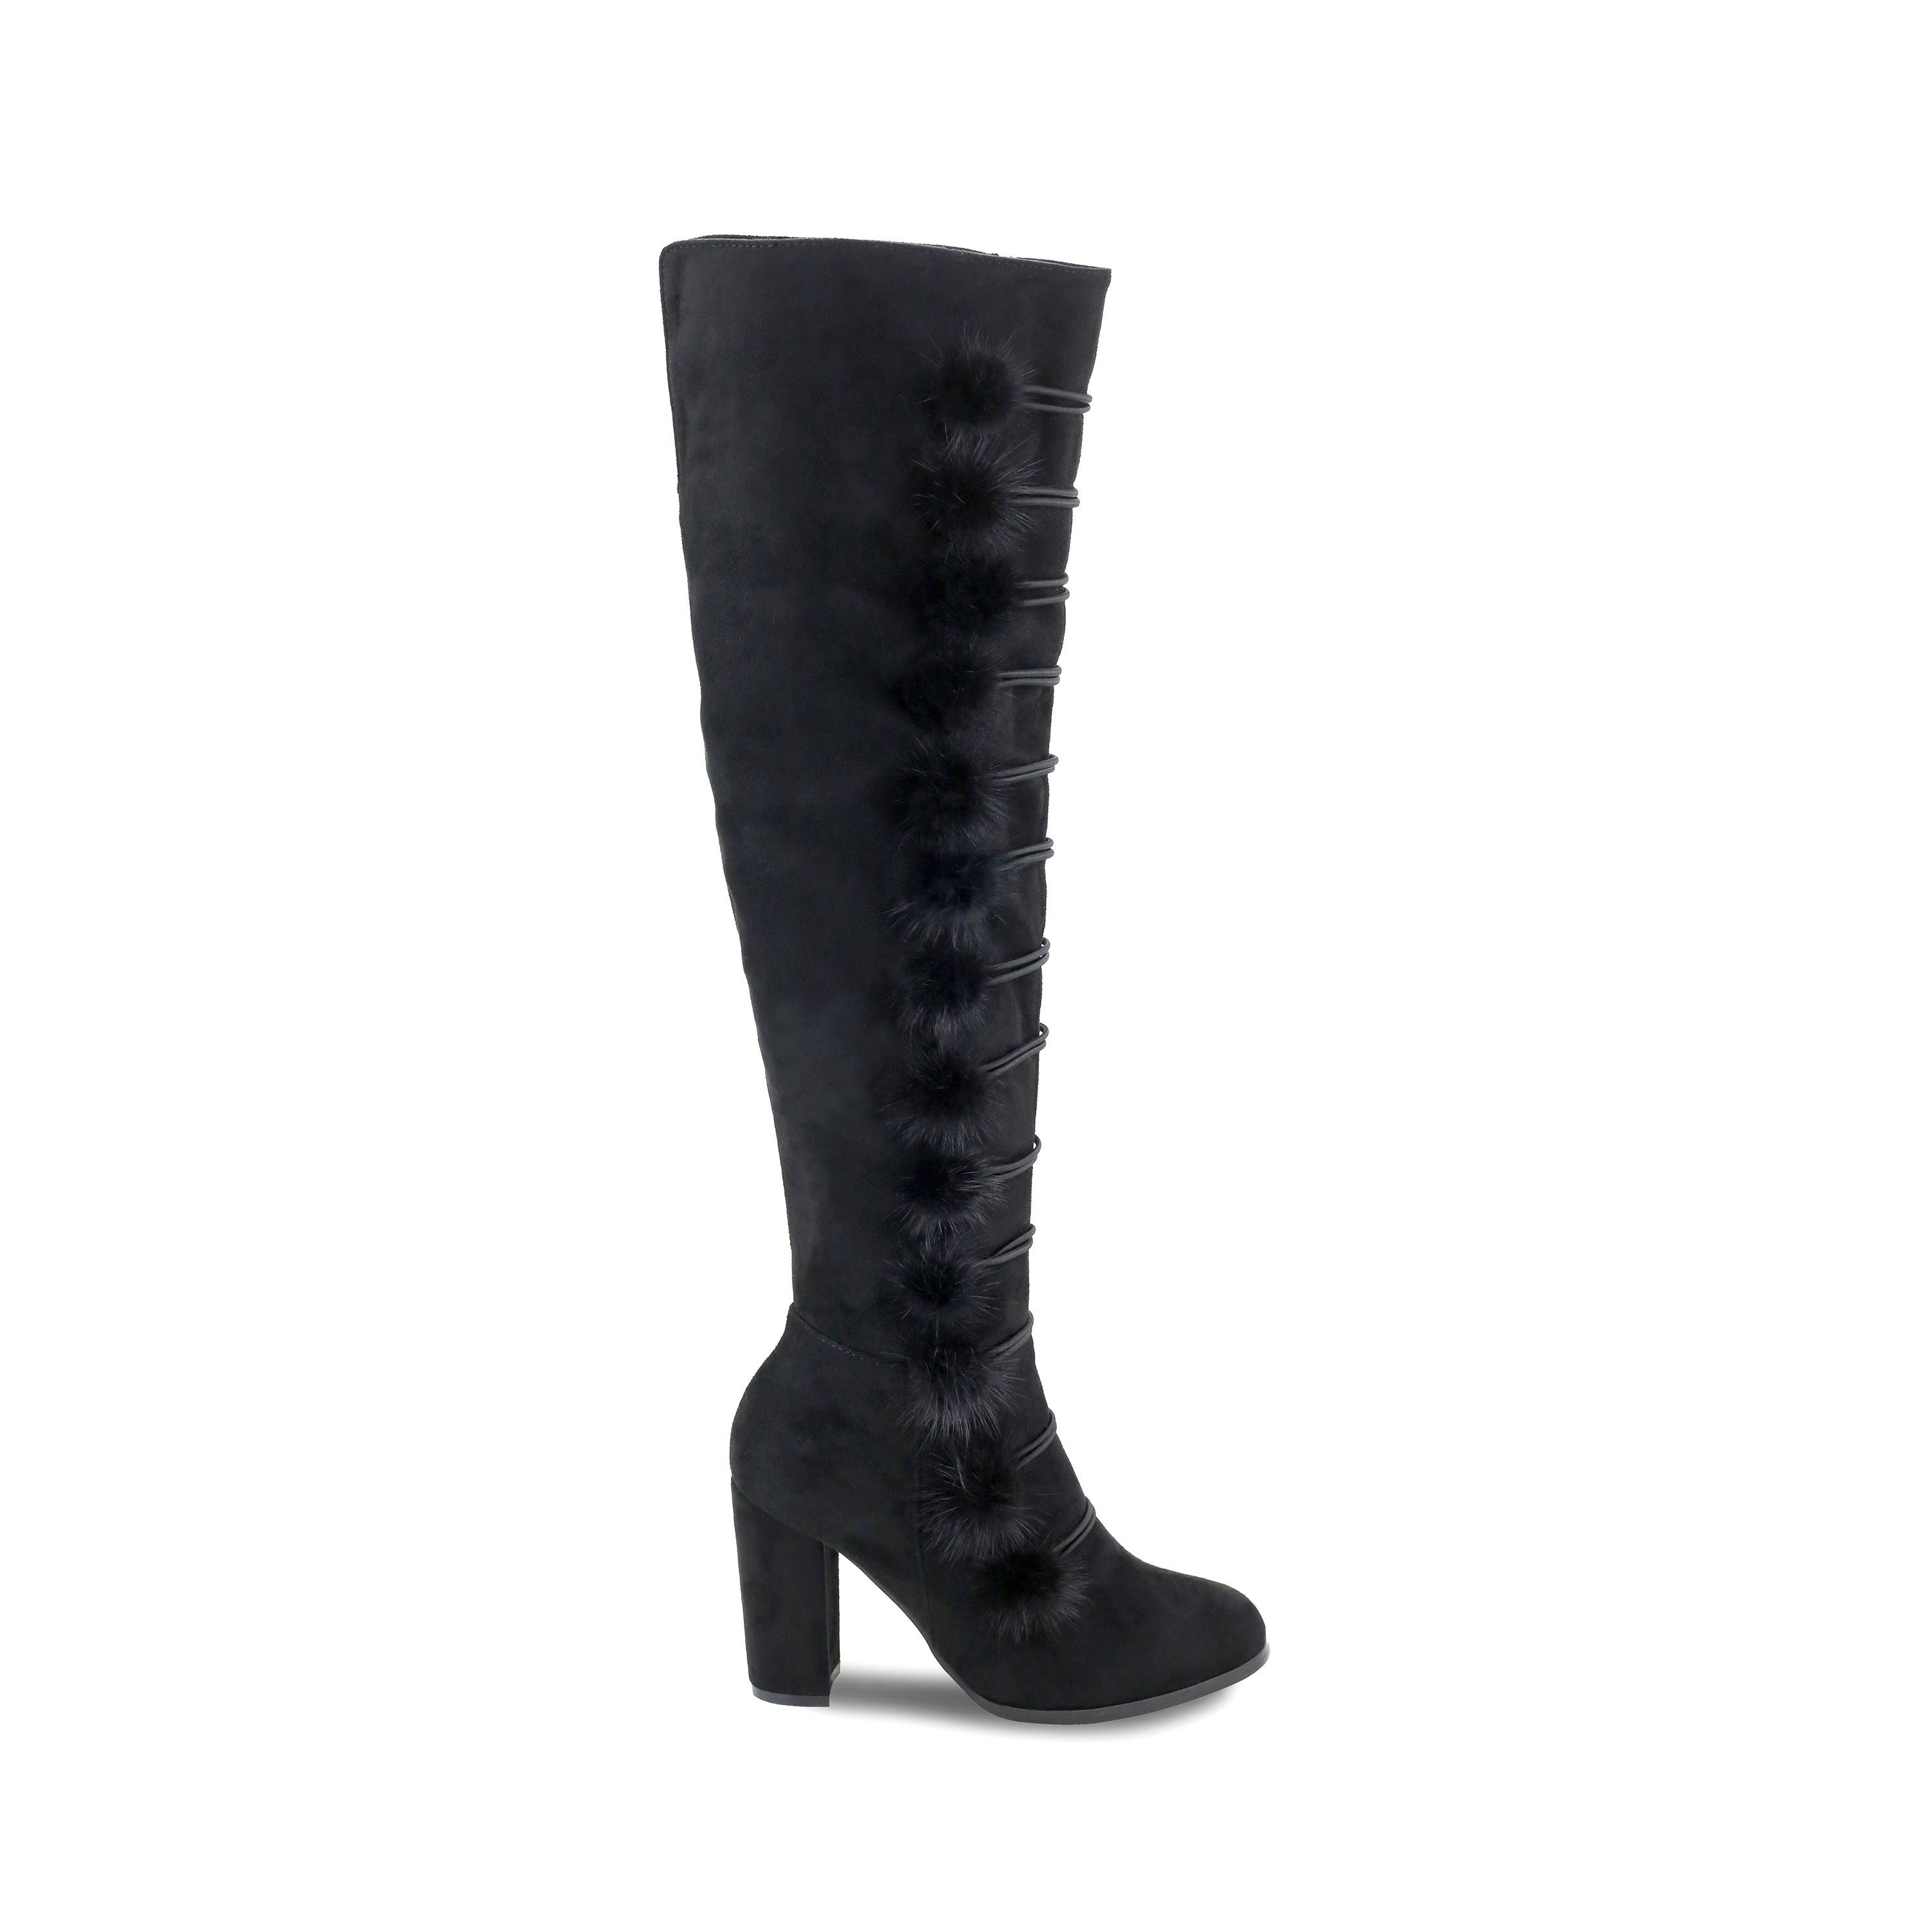 b8ac65a307a Shop Olivia Miller  Terryville  Multi Pom Pom Chunky Heel Over the knee  Boots - Free Shipping Today - Overstock - 17129052